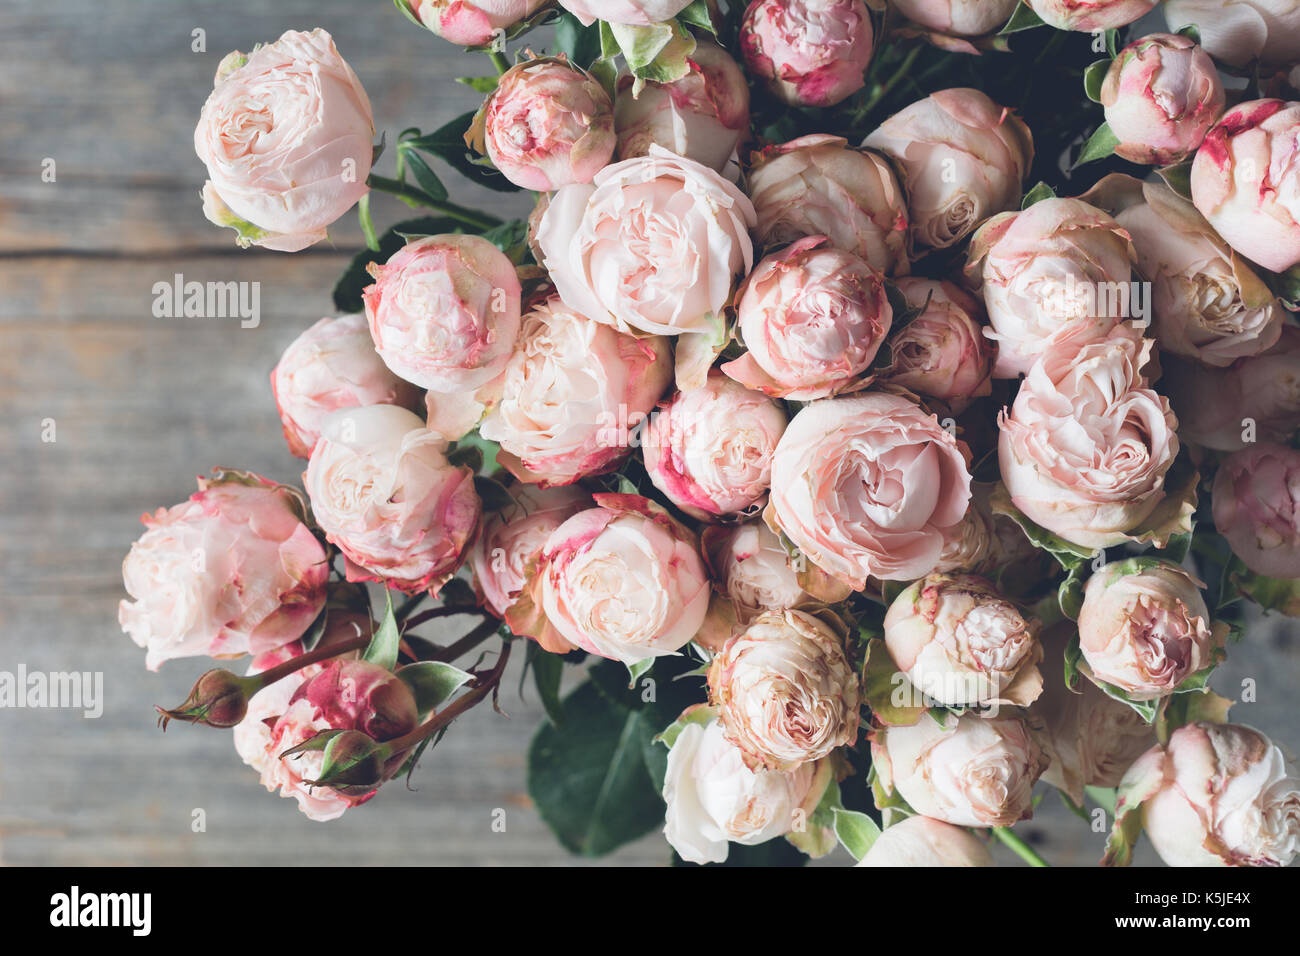 Pink shrub roses bouquet on wooden background beautiful wedding pink shrub roses bouquet on wooden background beautiful wedding shabby chic bouquet of flowers closeup view vintage toning izmirmasajfo